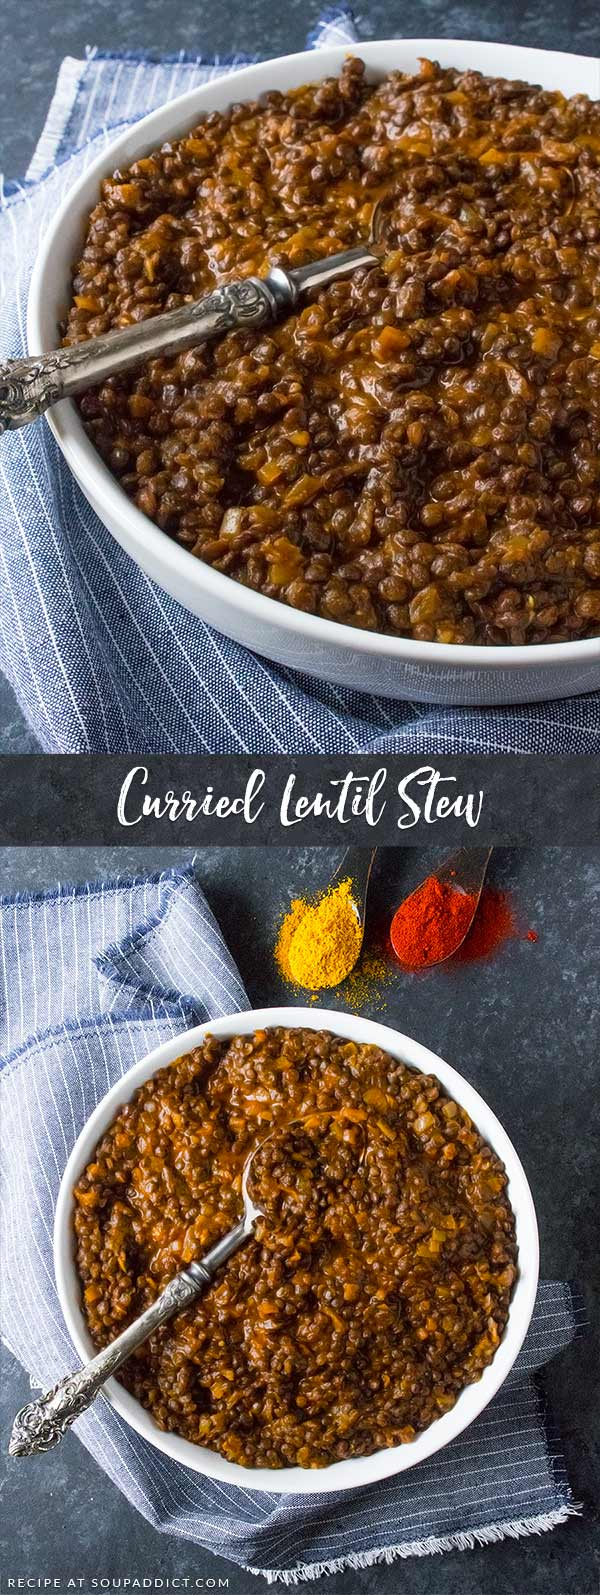 Curried Lentil Stew - with just seven ingredients you probably already have in your pantry, the best and easiest lentil stew is just 30 minutes away. Make-ahead awesome, simple, and satisfying. Recipe at SoupAddict.com | lentils | curry | stew | food in bowls